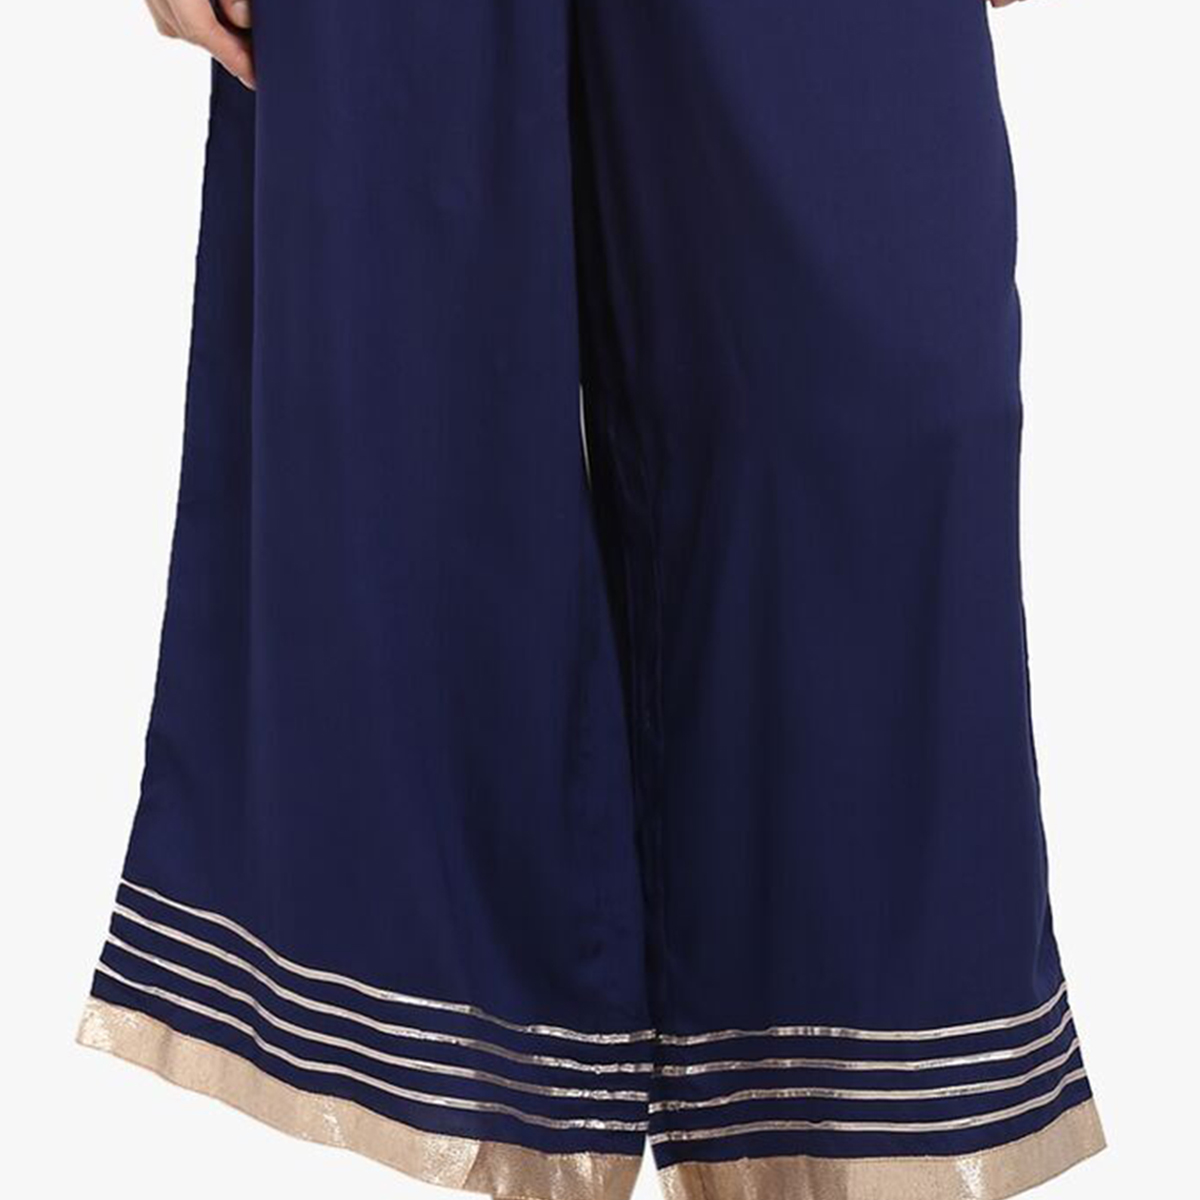 Elegant Navy Blue Colored Casual Rayon Palazzo